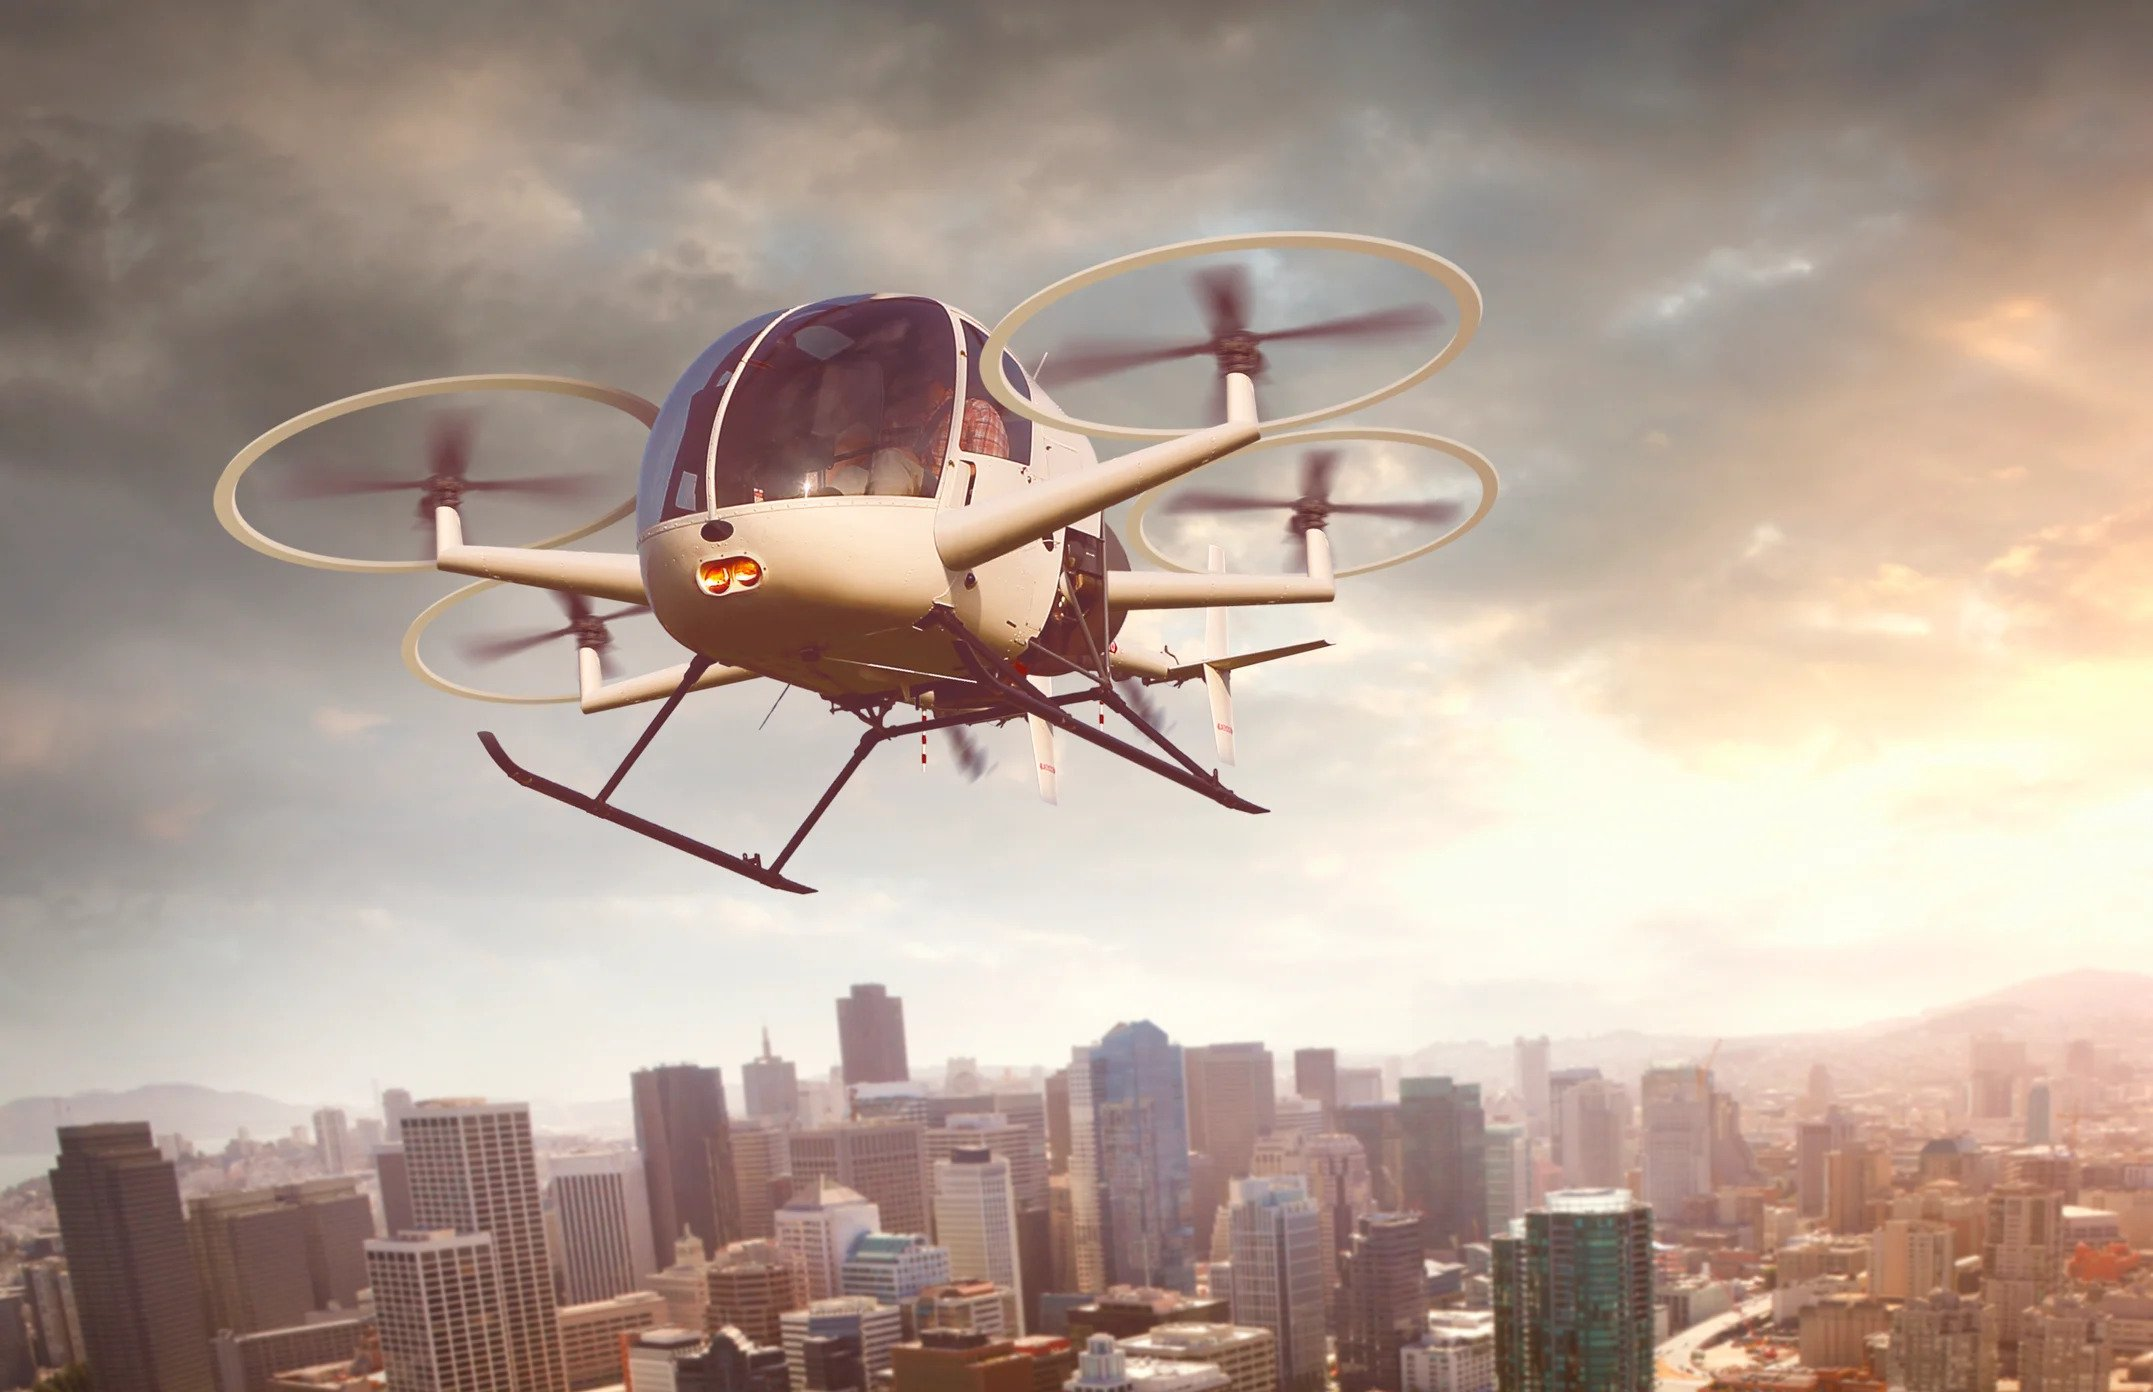 Air Taxi- Getty Images